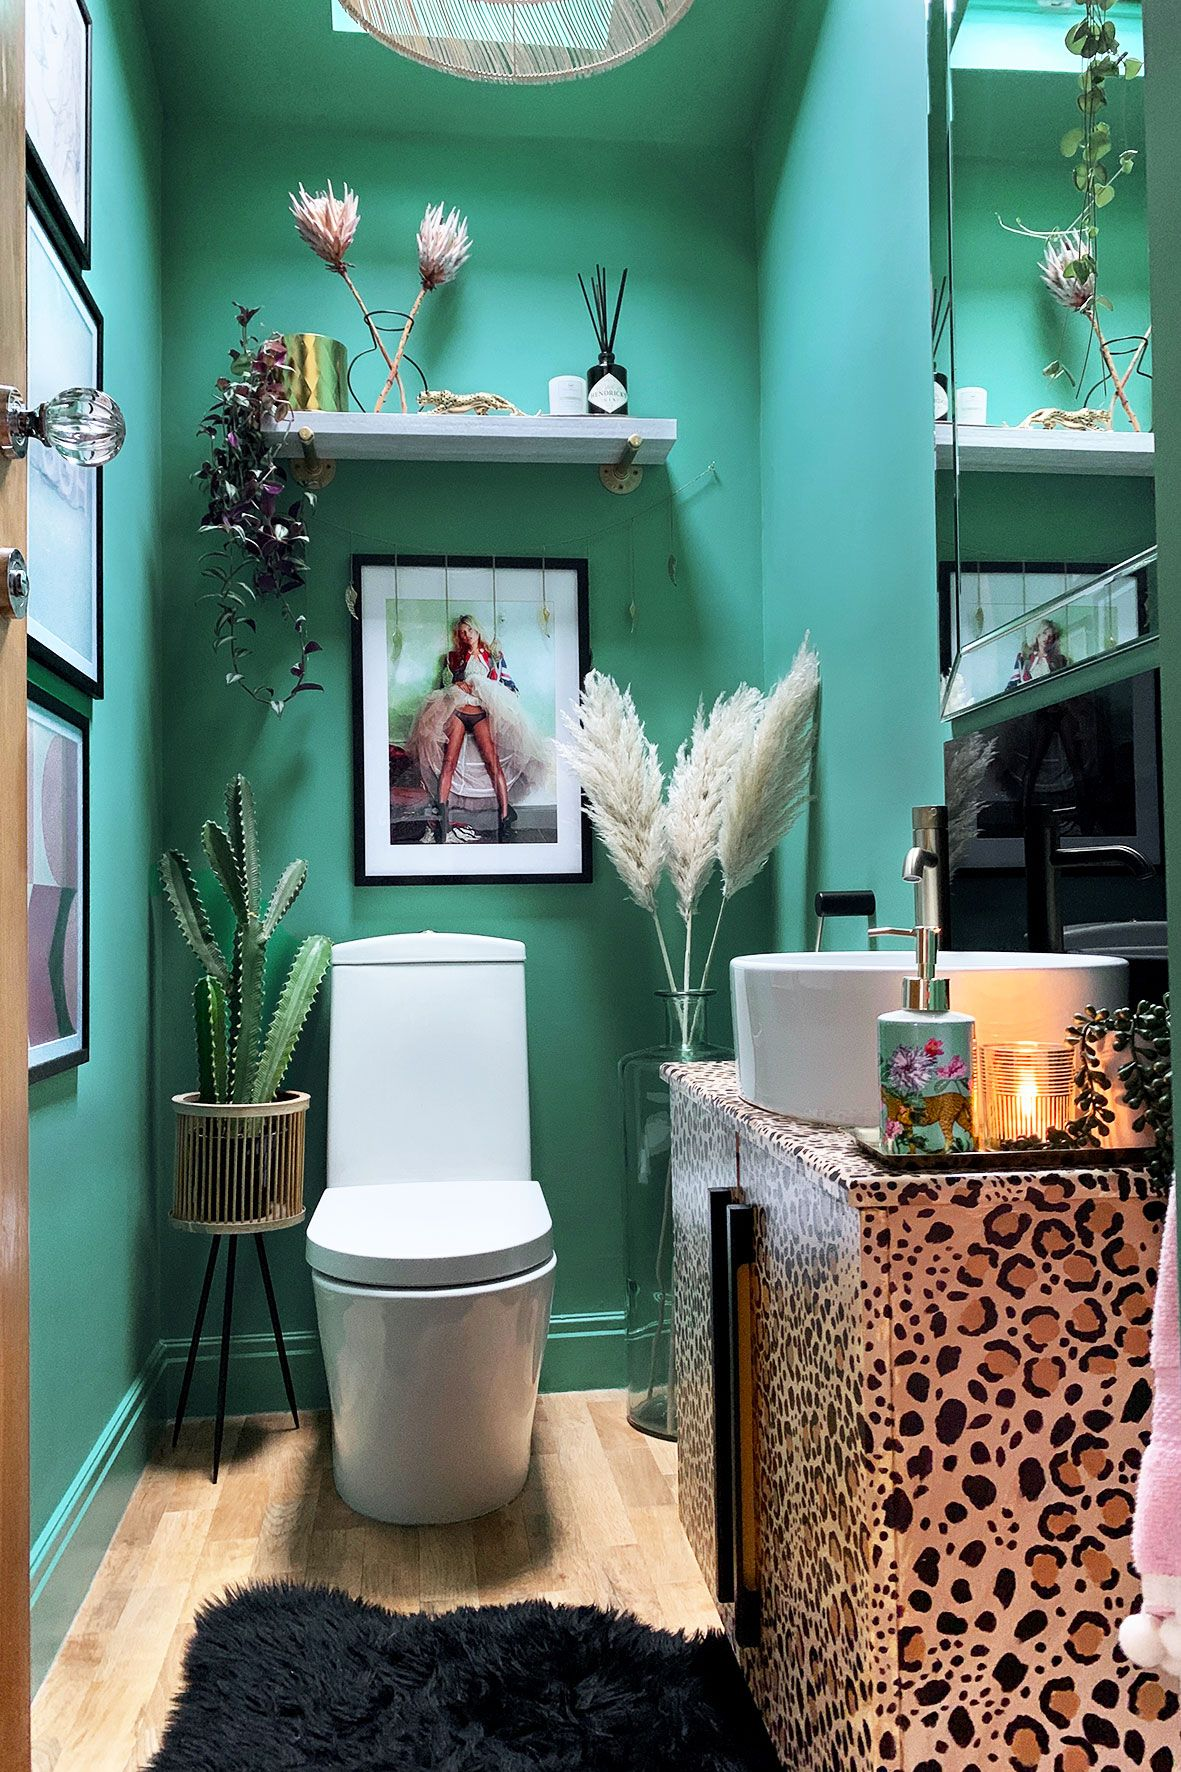 Quirky Downstairs Toilet Makeover - Teal & Leopard Decor